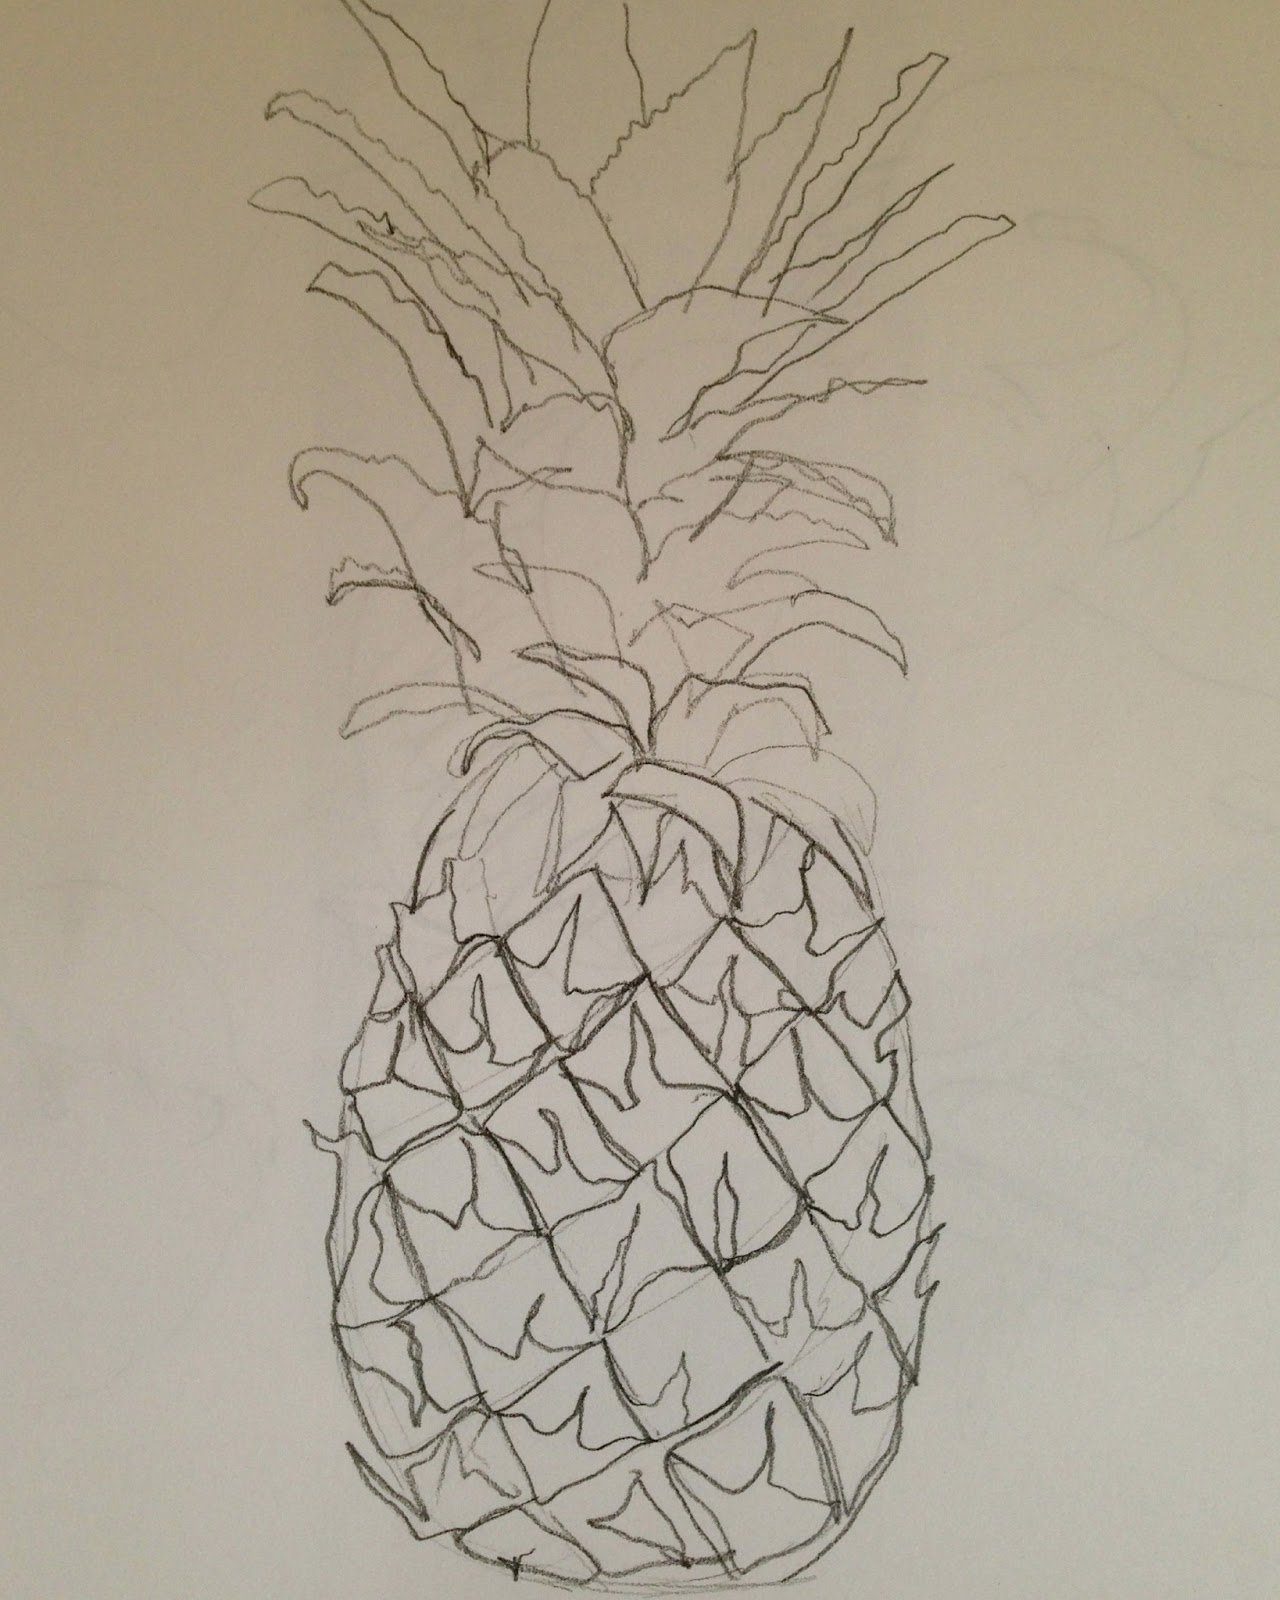 Pineapple Drawing For Kids For this pineapple i looked upPineapple Drawing For Kids